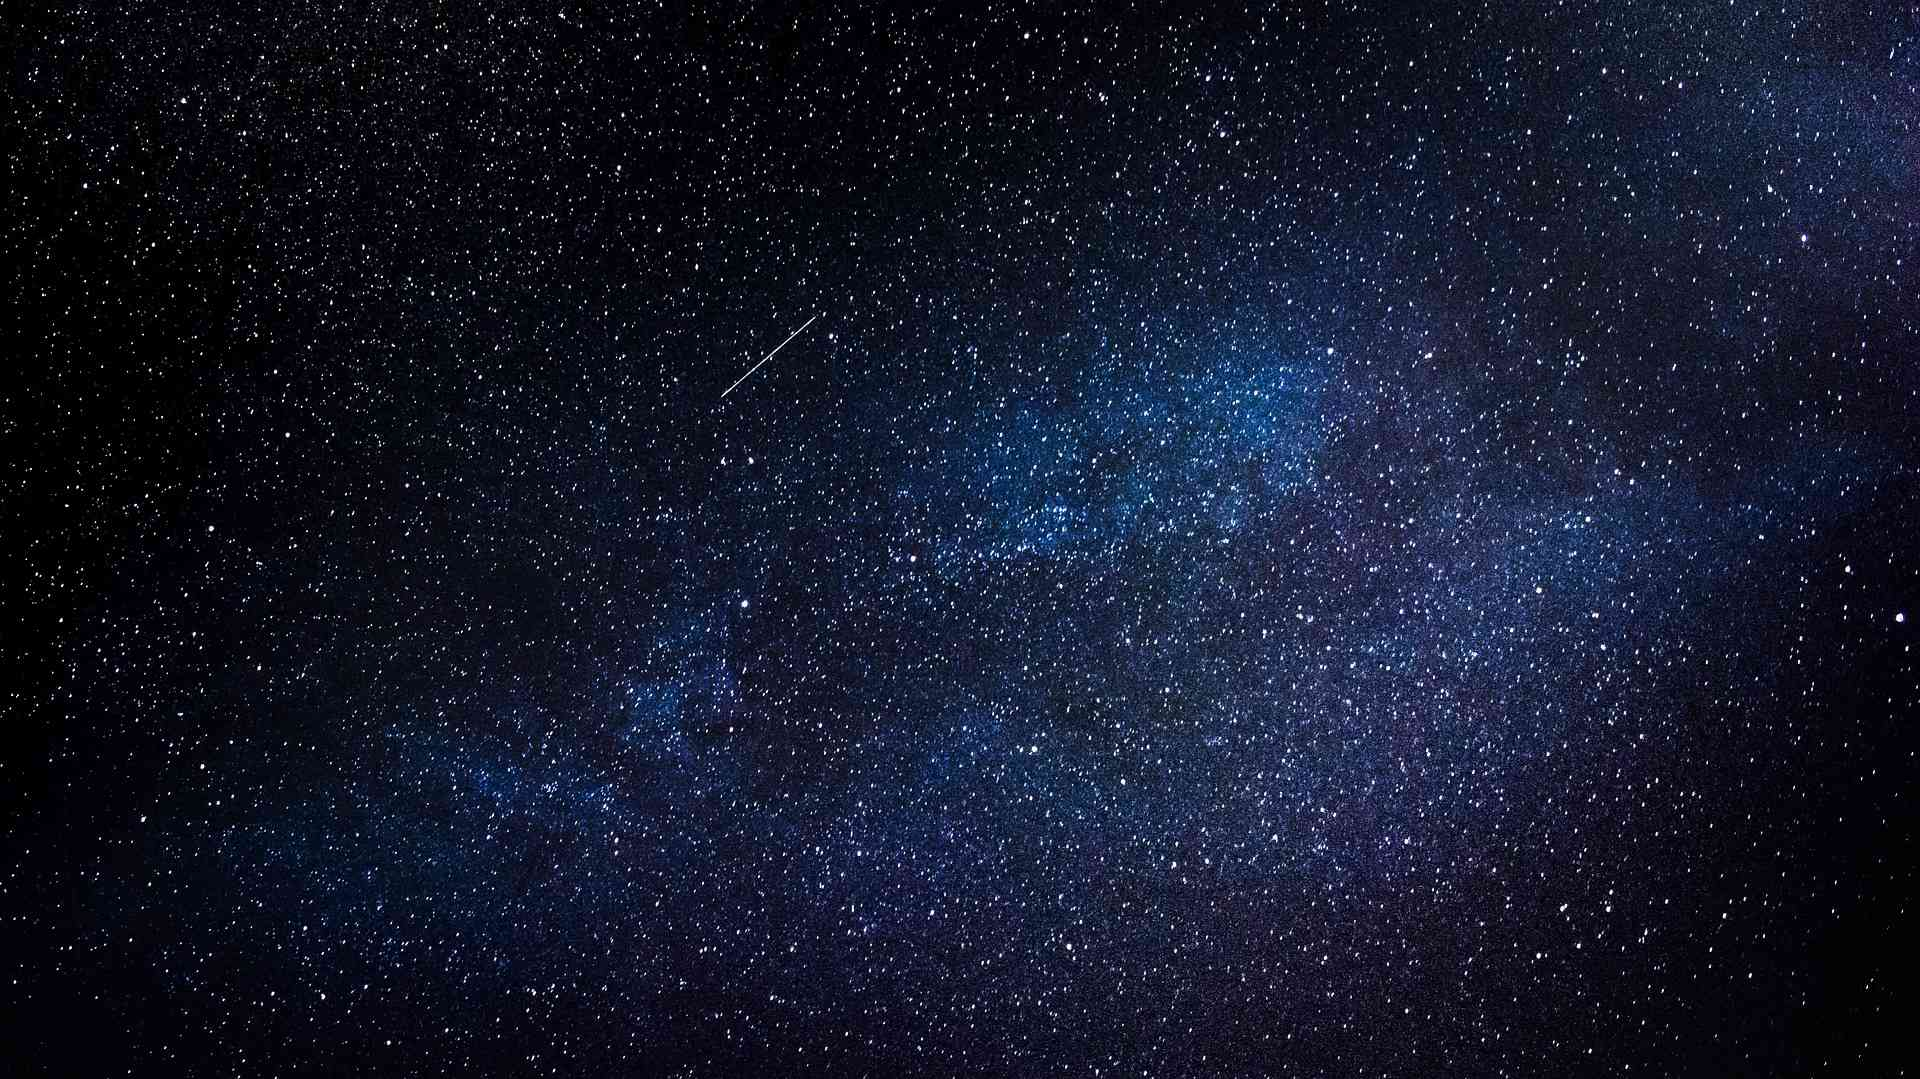 Picture of the night sky full of stars.